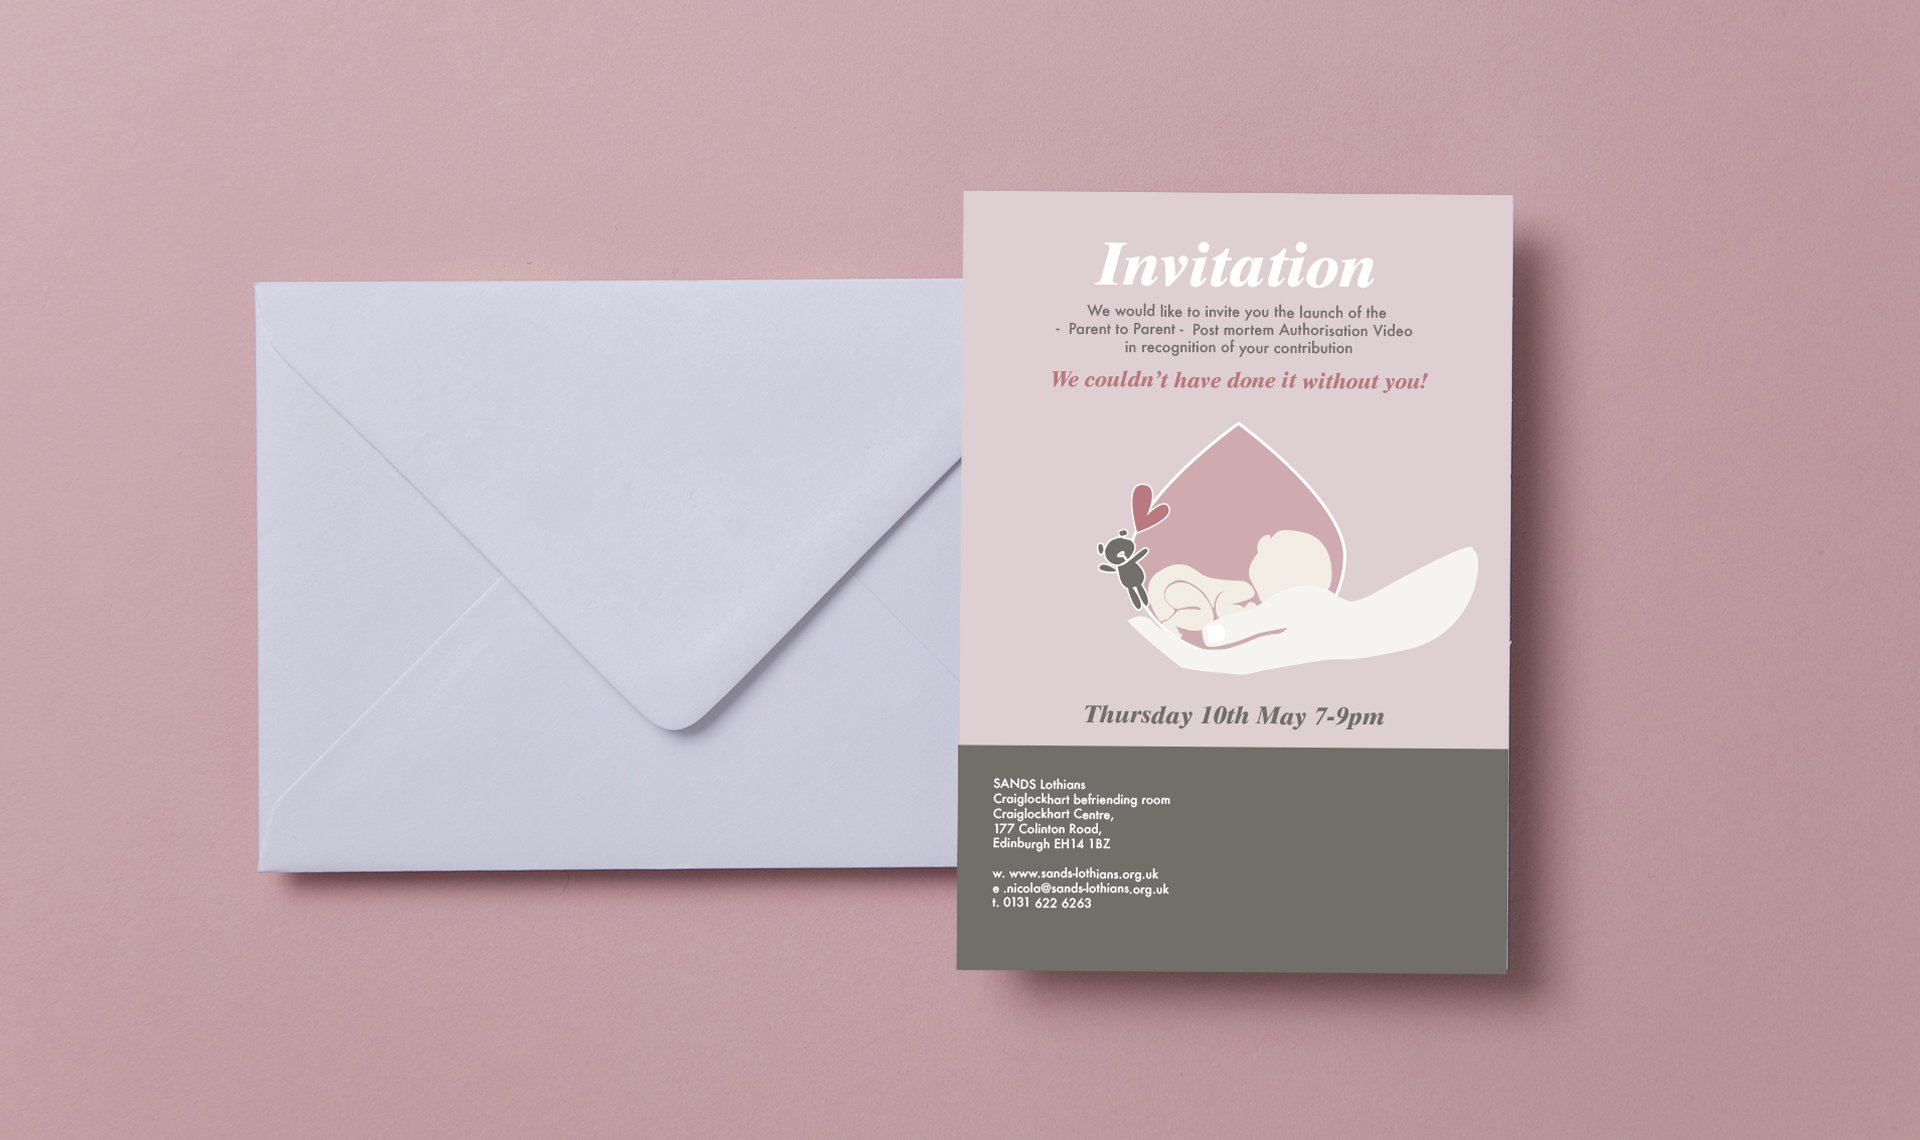 Invitation to Sands 'Parent to Parent' launch night concerning stillbirth and loss of child during pregnancy